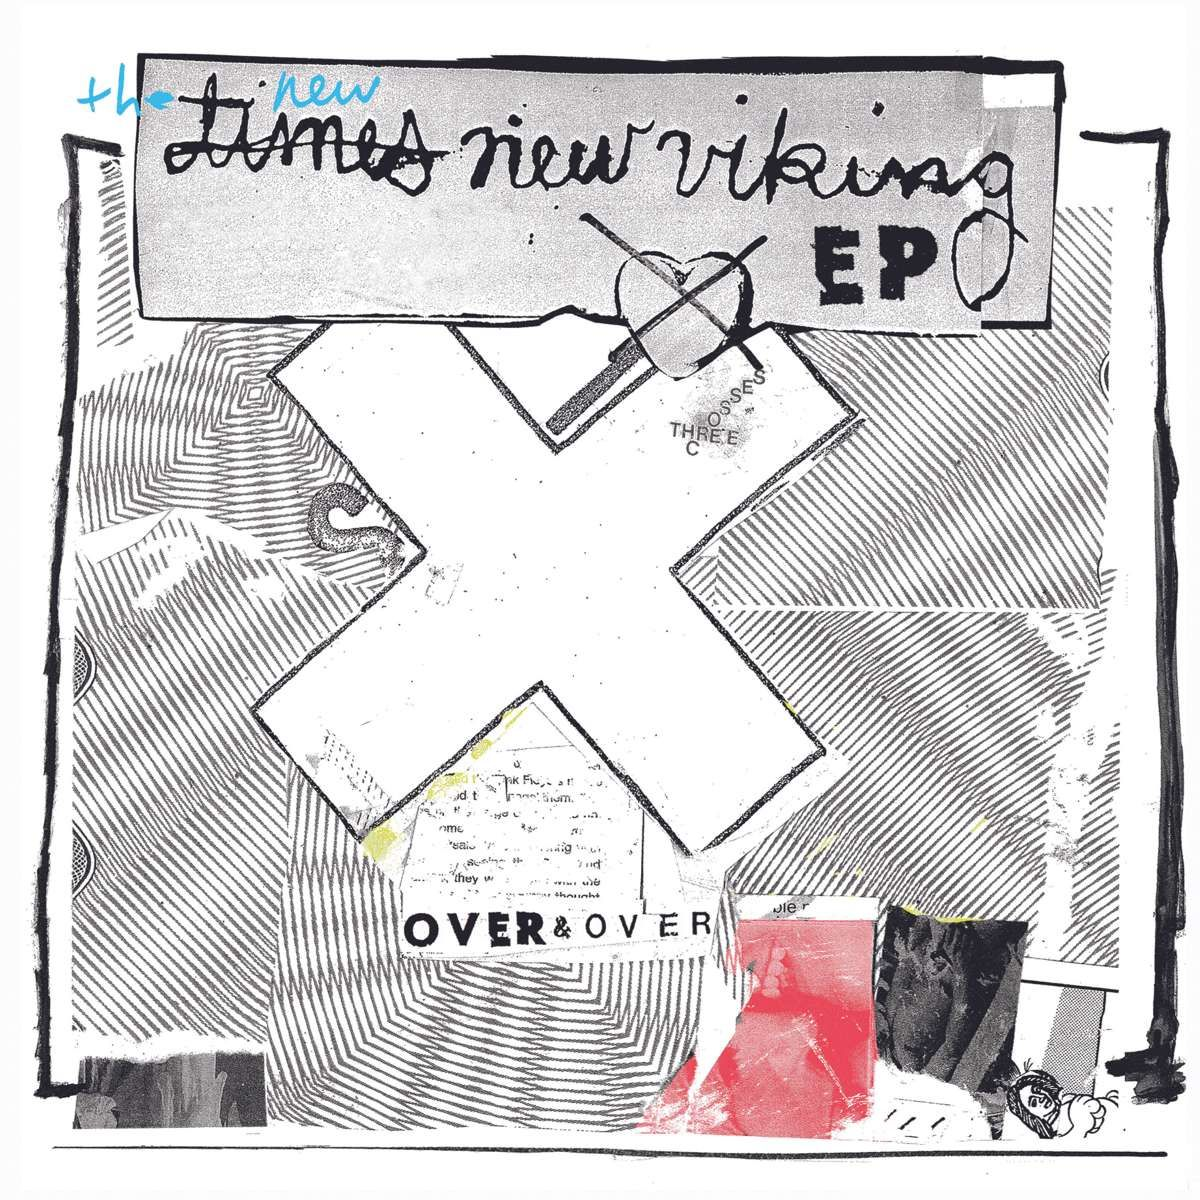 Over & Over EP Download (MP3)